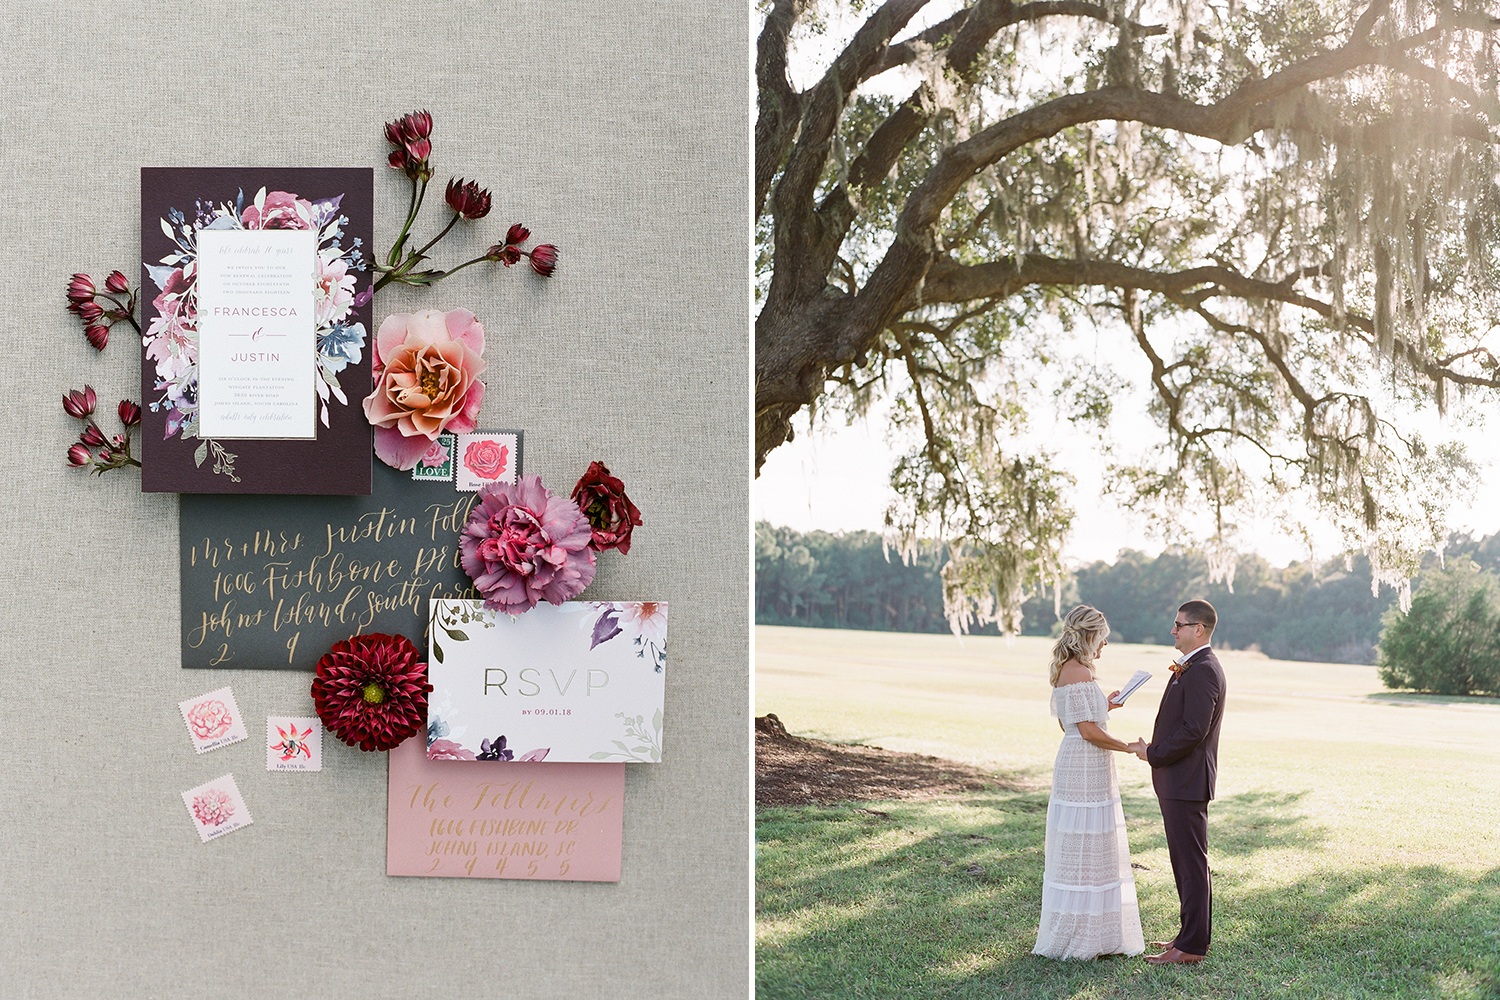 Charleston-Elopement-Weddings.jpg